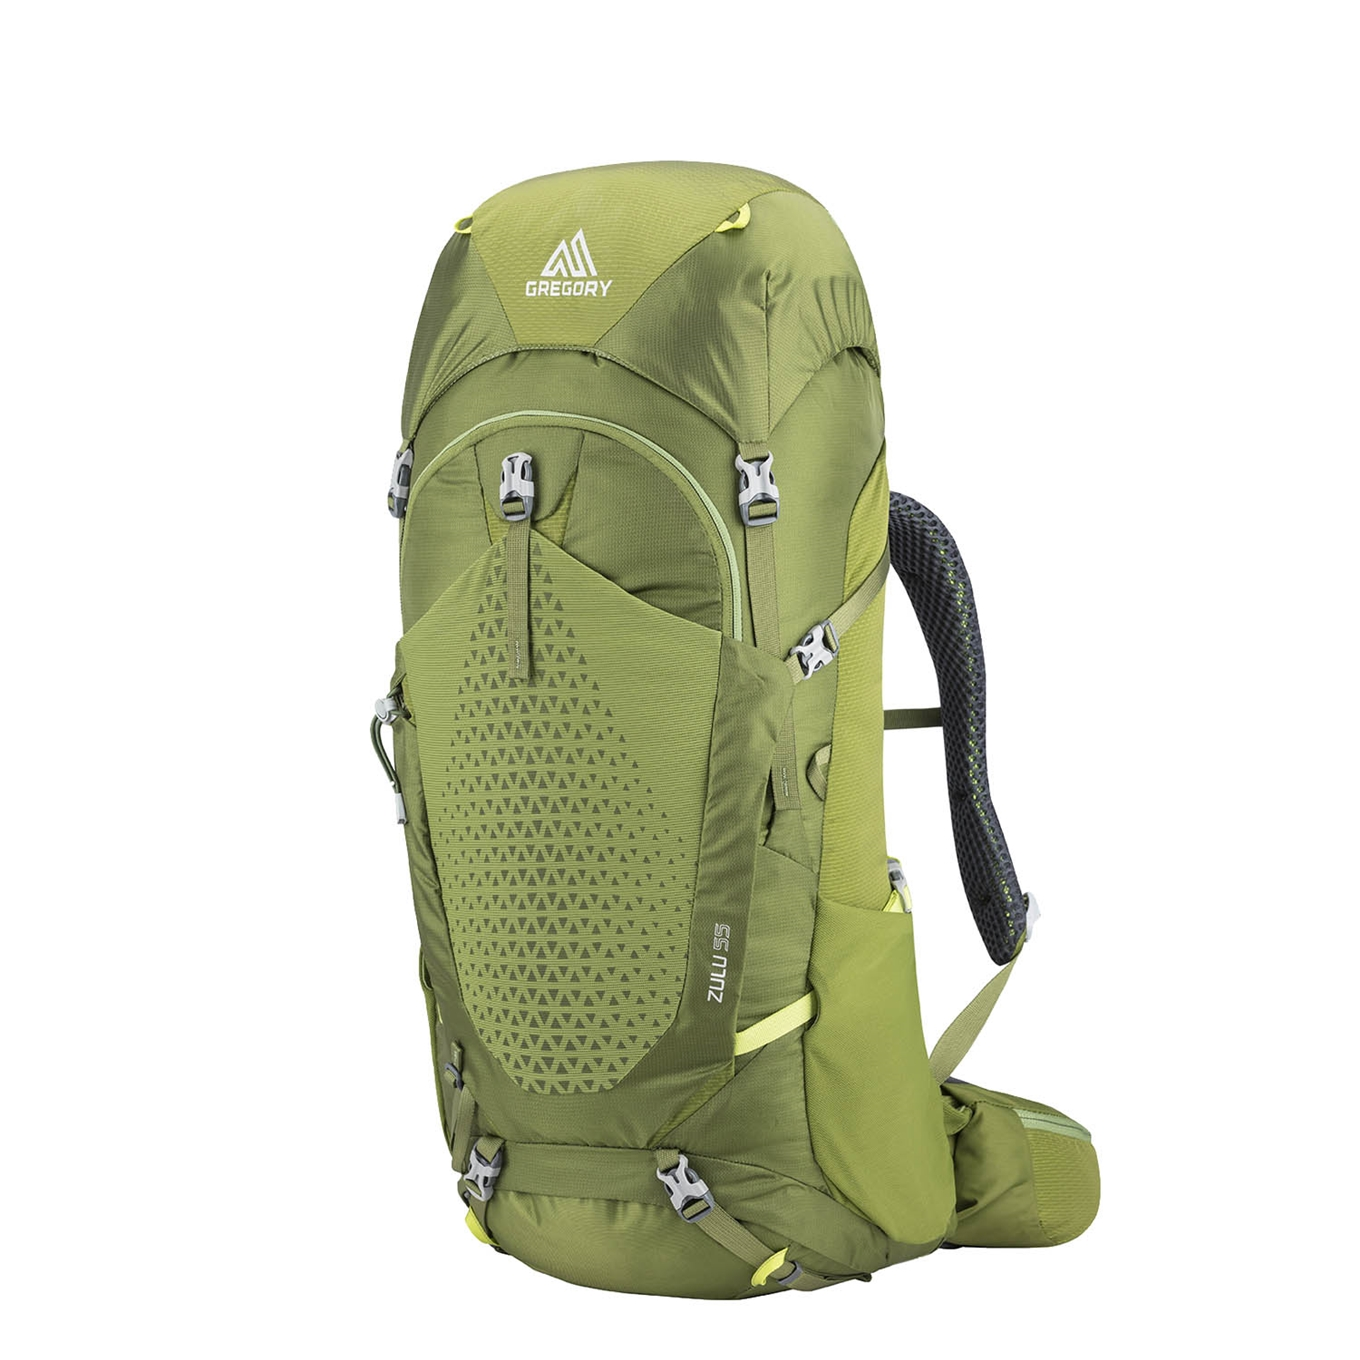 Gregory Zulu 55L Backpack S/M mantis green backpack <br/></noscript><img class=